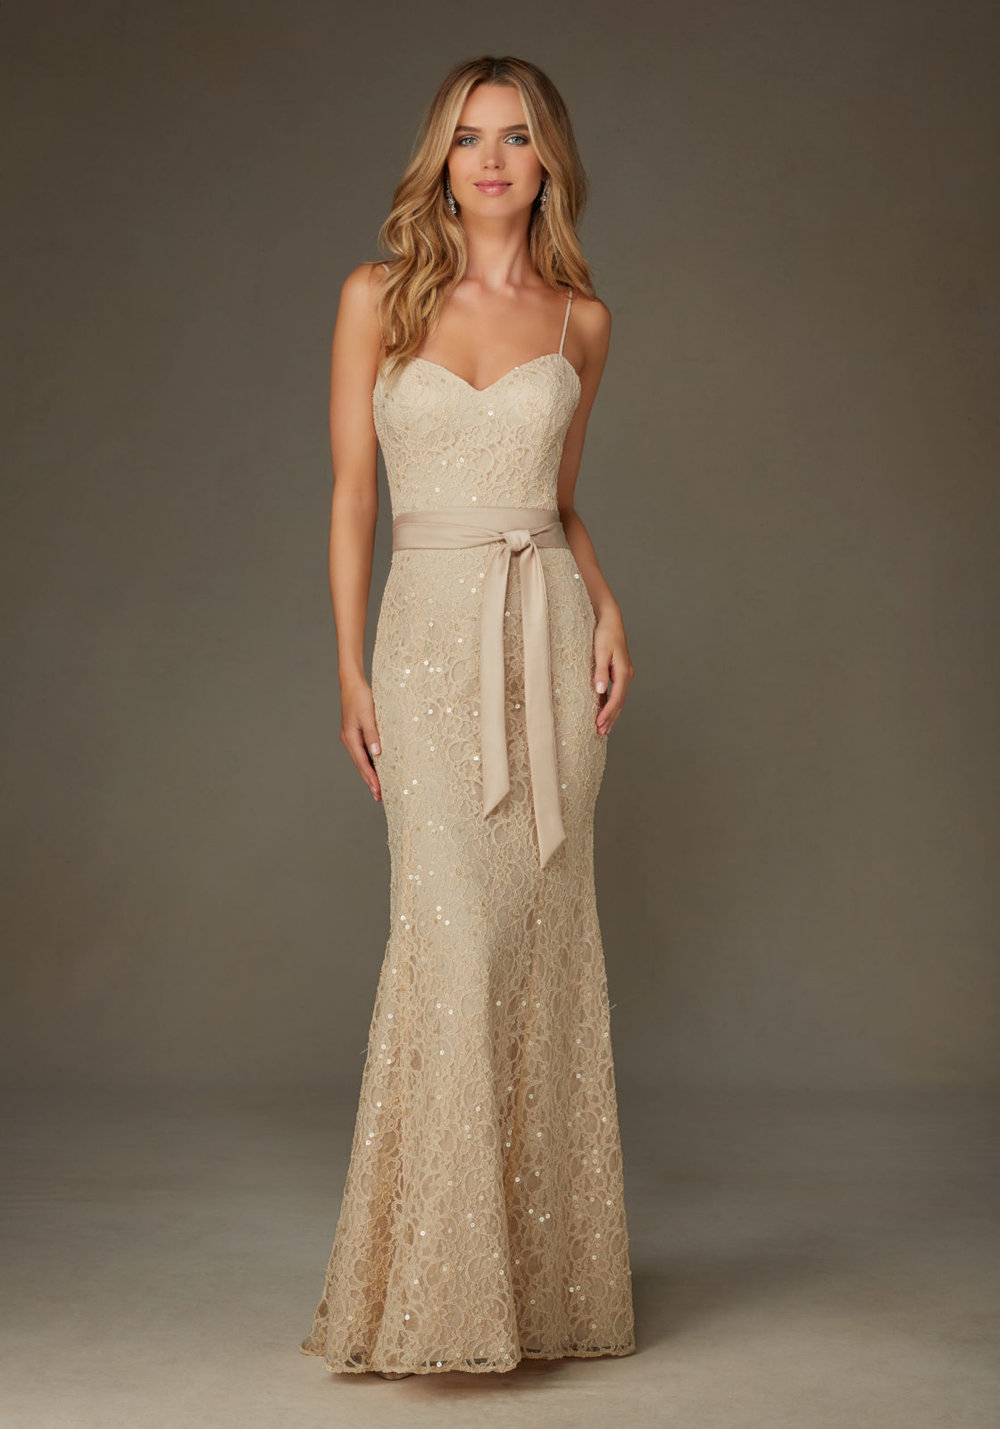 Elegant Beaded Lace Mori Lee Bridesmaids Dress